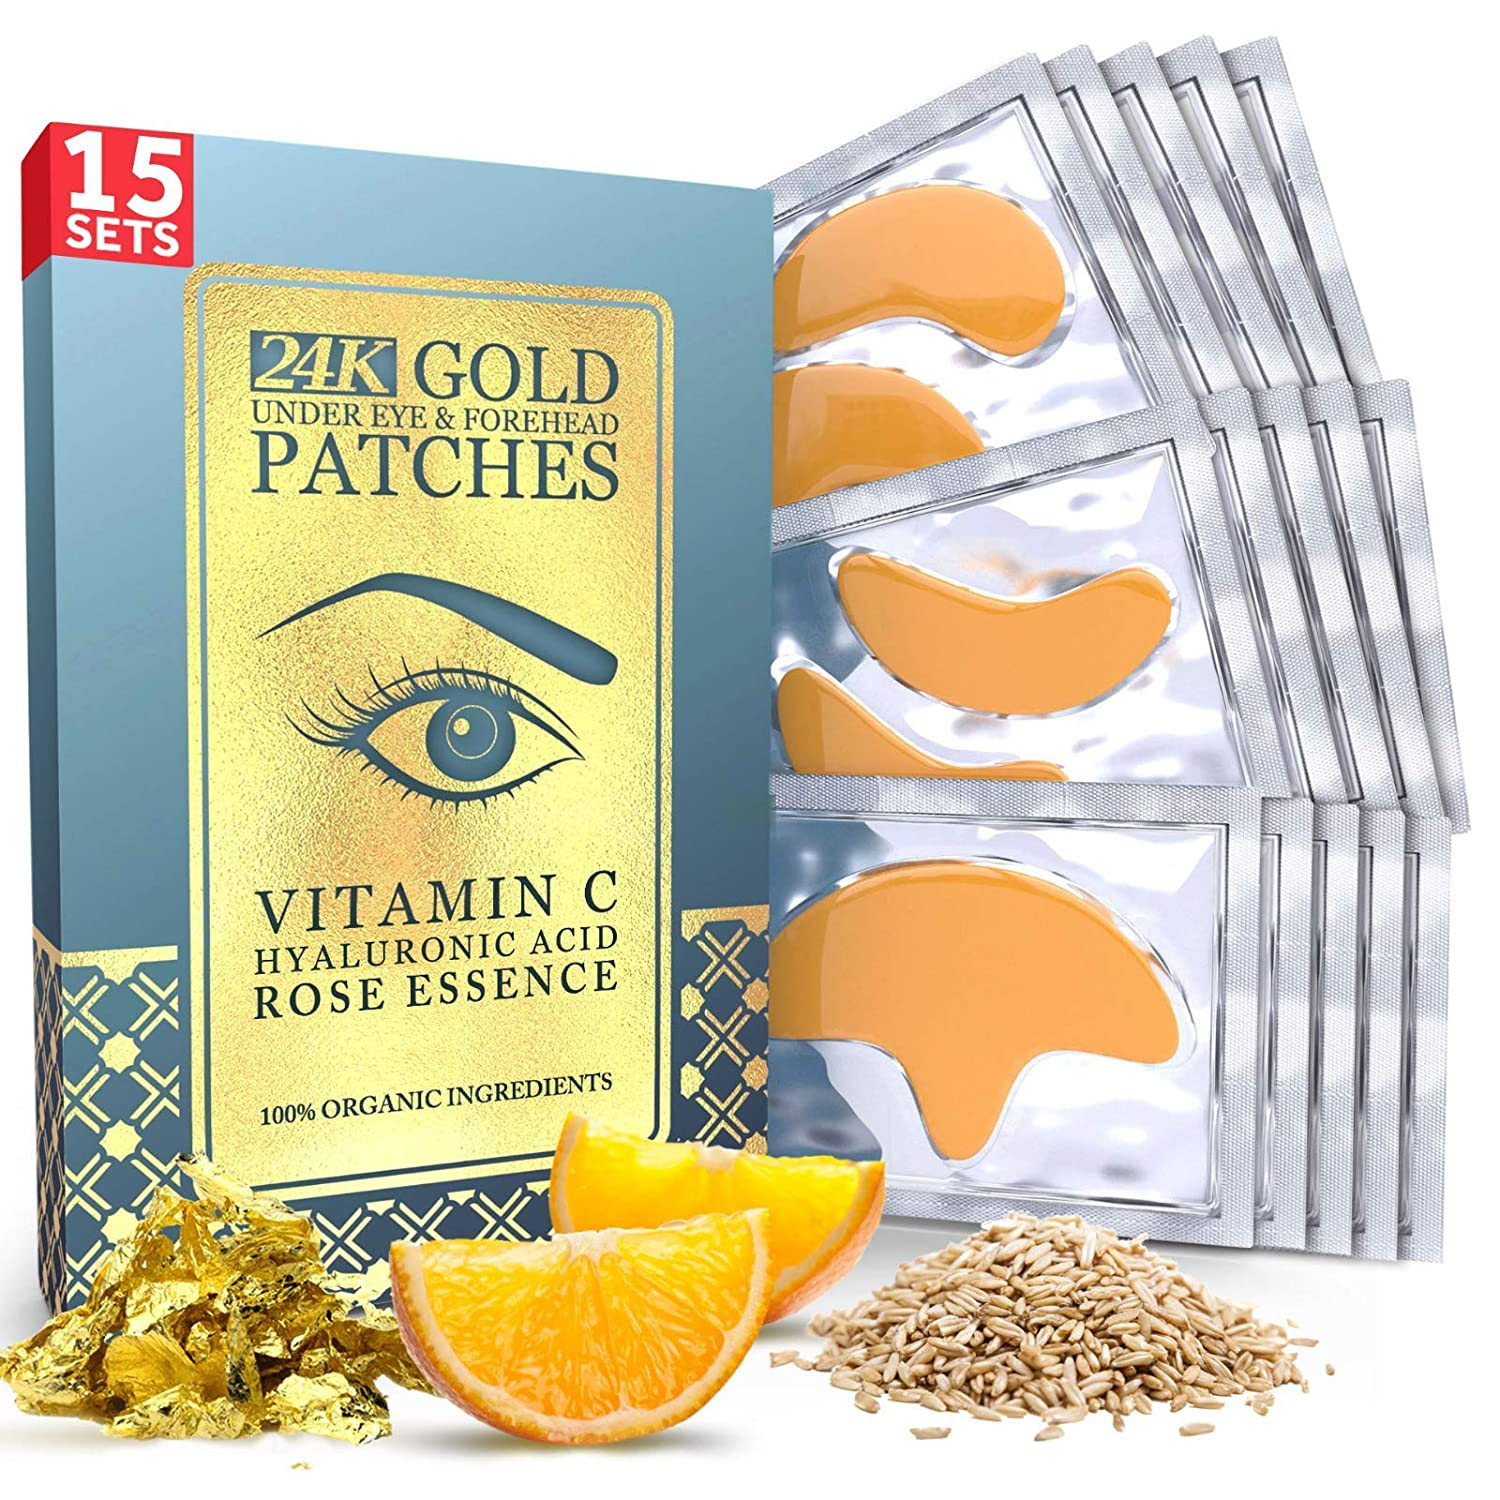 Under Eye and Forehead 24K Gold Patches - Anti-Aging Collagen Hyaluronic Acid Pads Helps Reducing Puffiness & Wrinkles & Dark Circles Bags - Gel Bags With No Parabens, Hidden Chemicals, Side Effects: Beauty